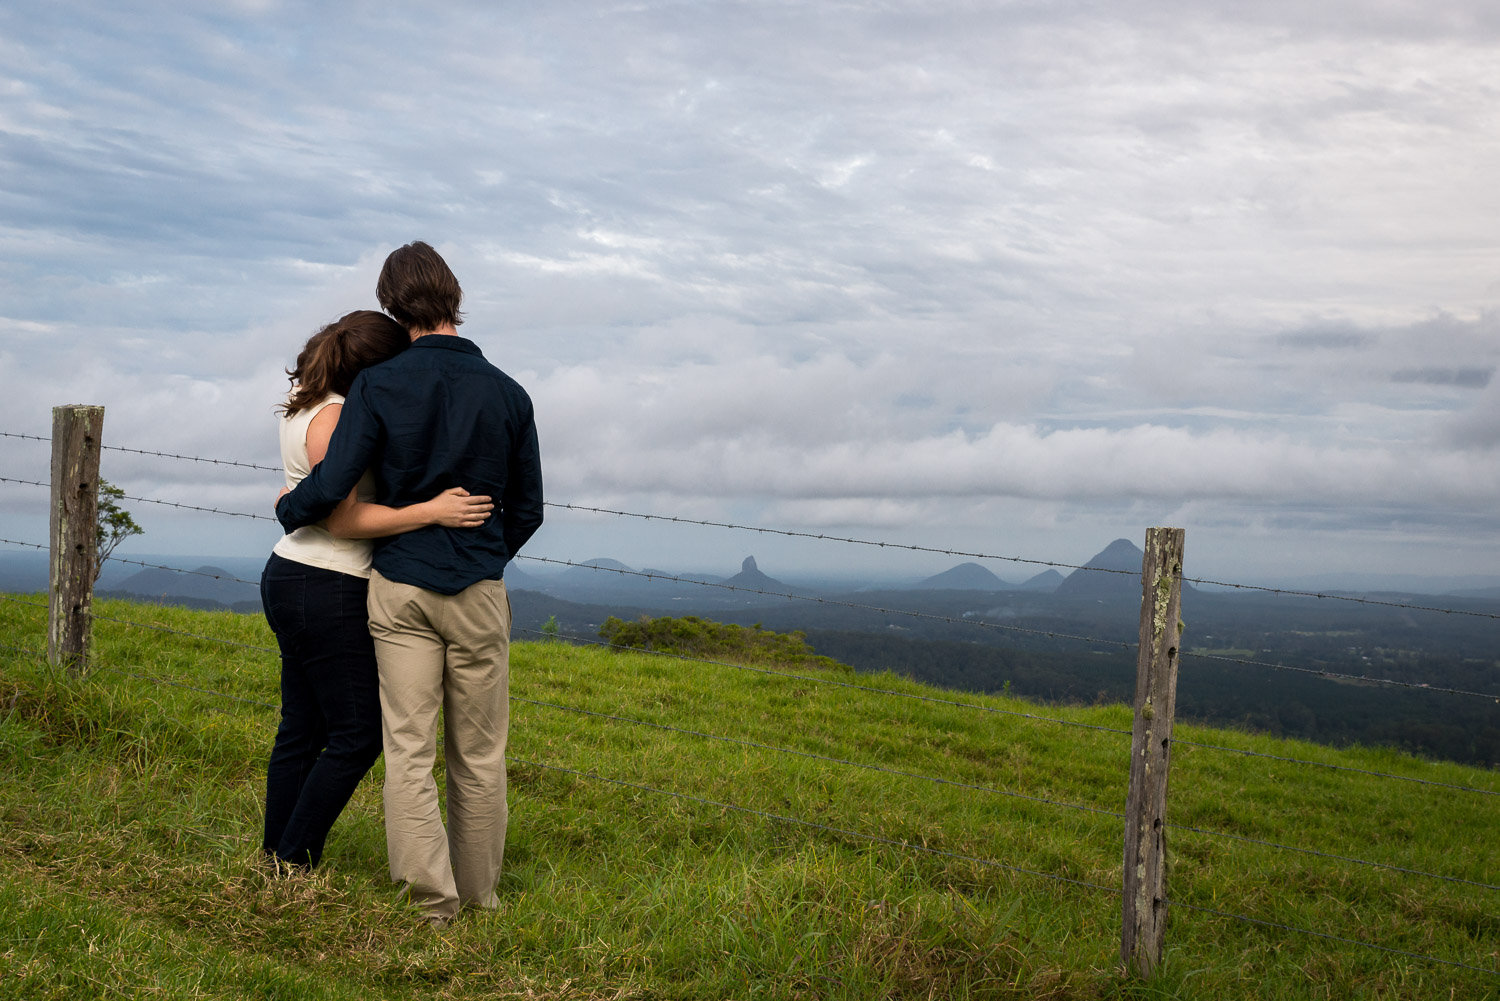 couple embracing with mountains in background